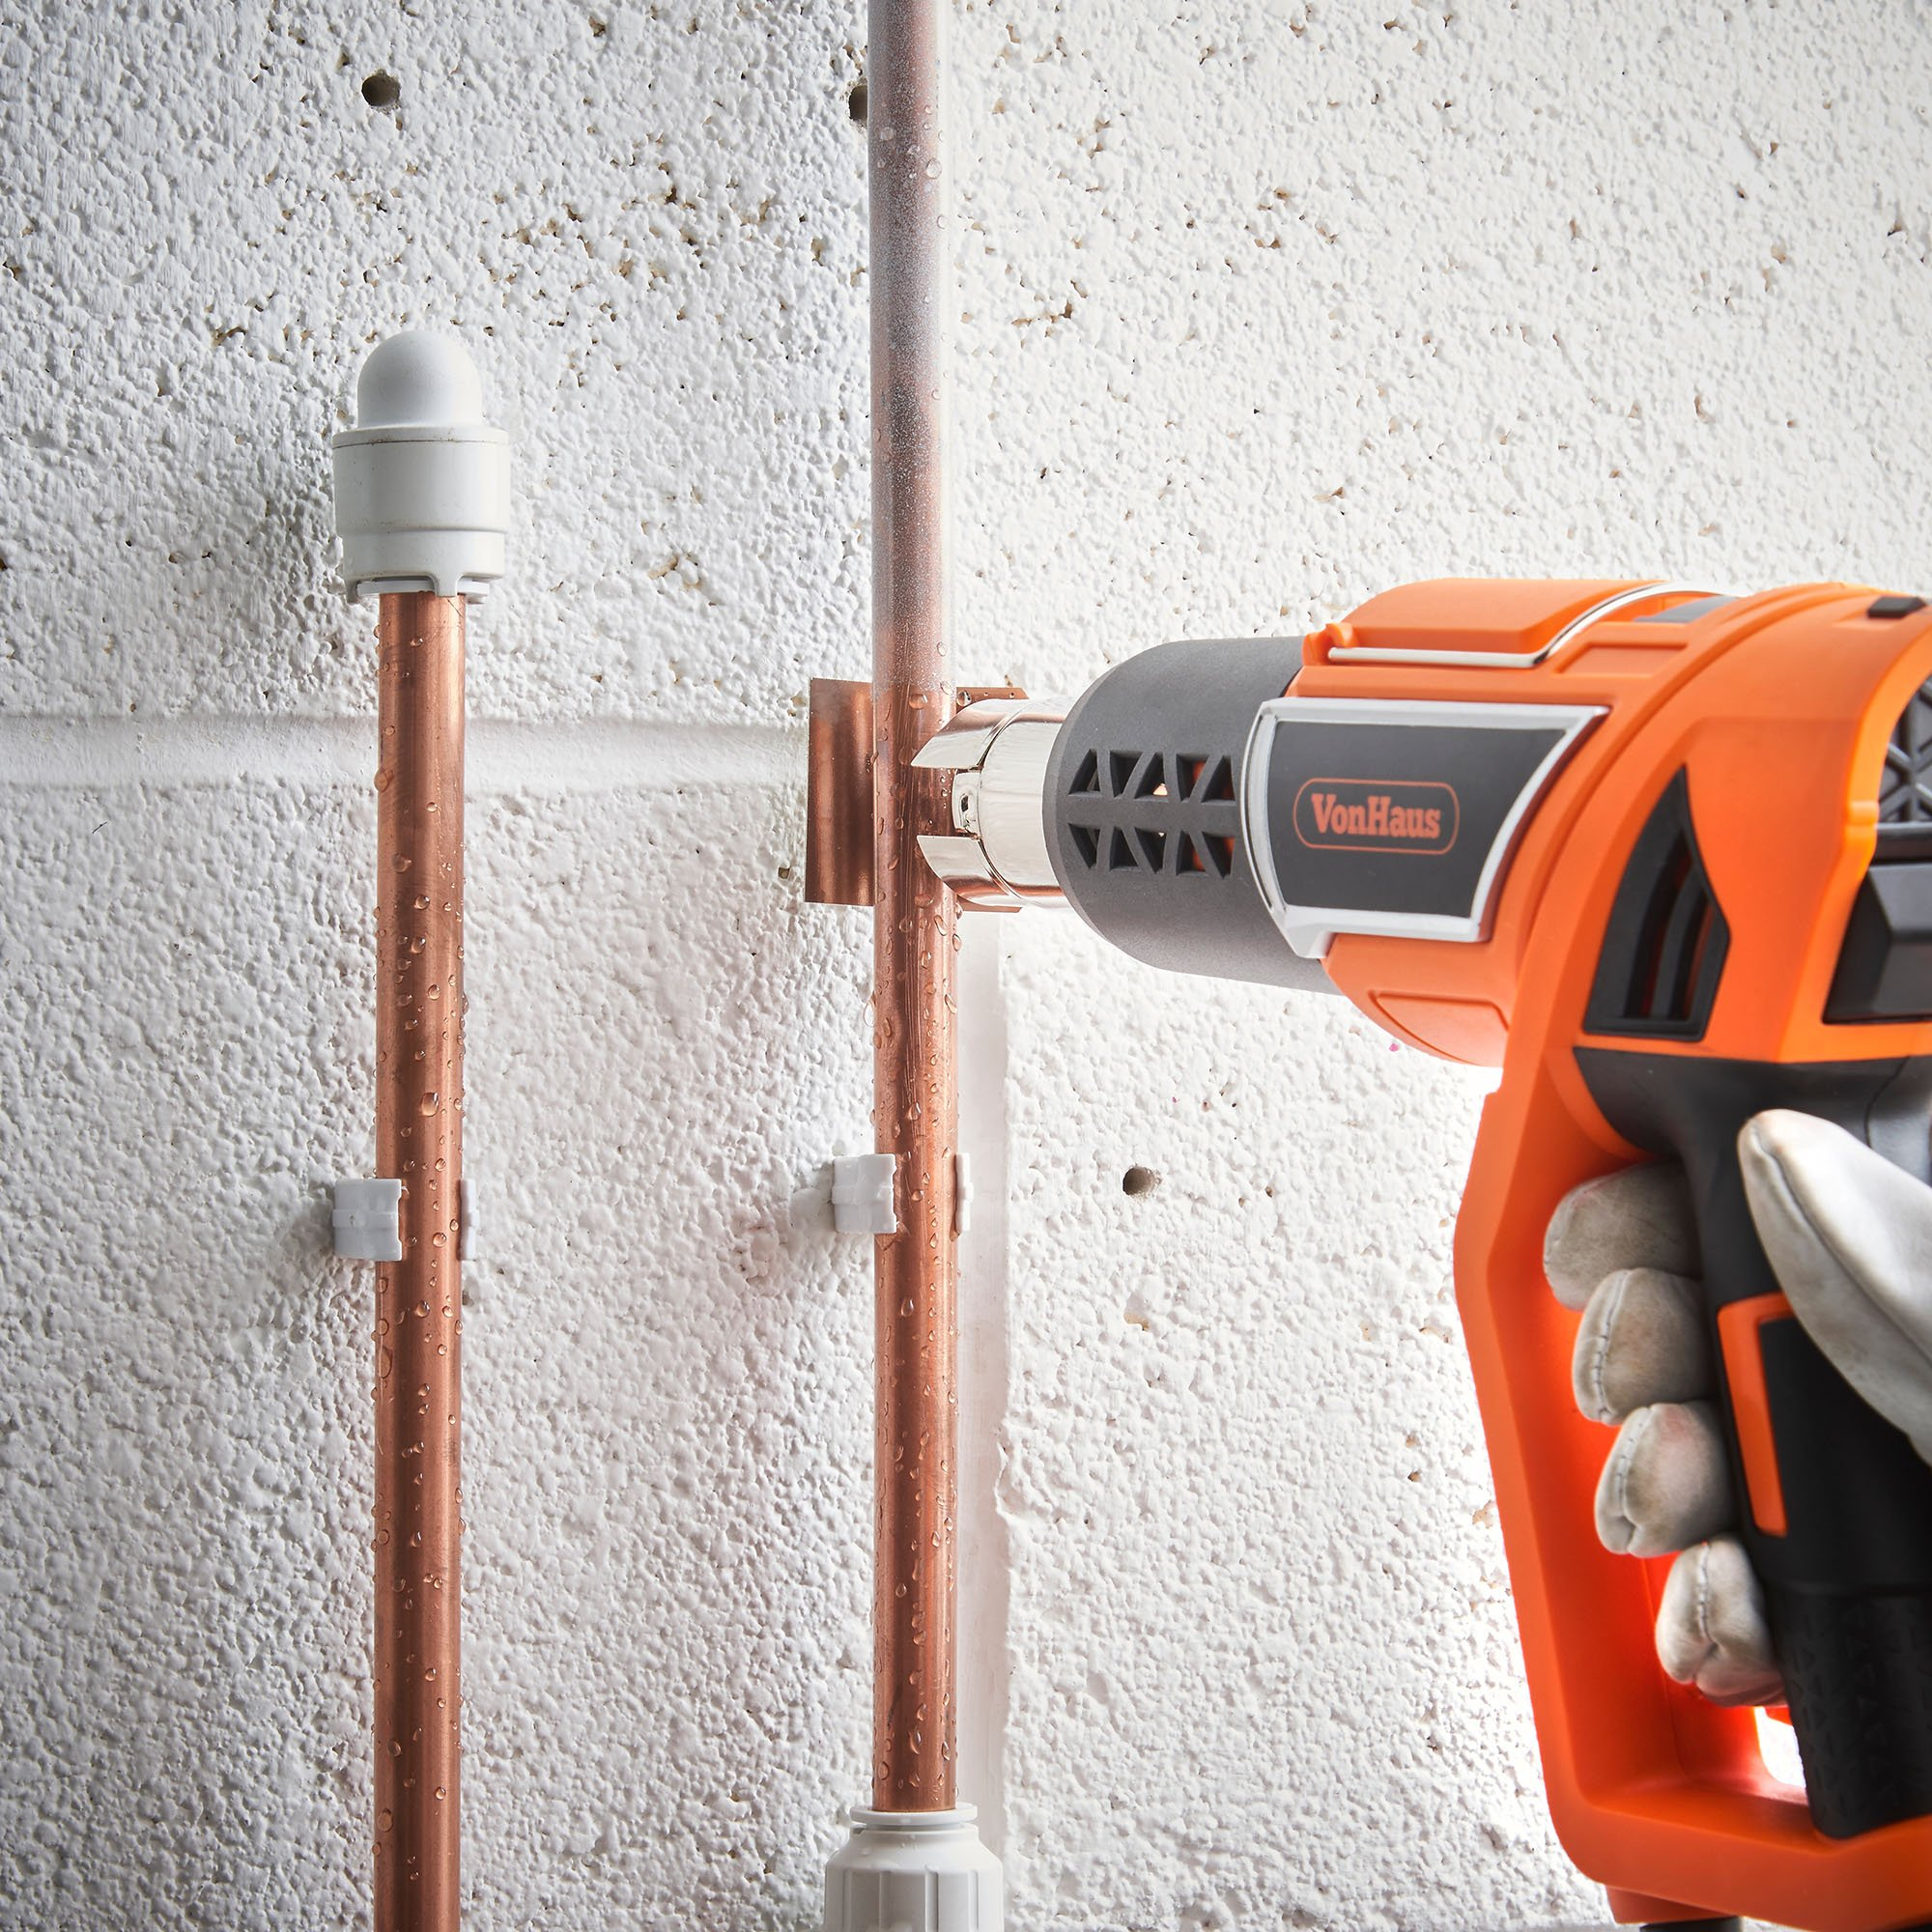 VonHaus 1500W Heat Gun Hot Air Gun with Variable Temperature Control, 3-Position Adjustable Handle and 5 Nozzle Attachments for Shrinking PVC, Removing Paint, Bending Pipes, BBQ Grills by VonHaus (Image #5)